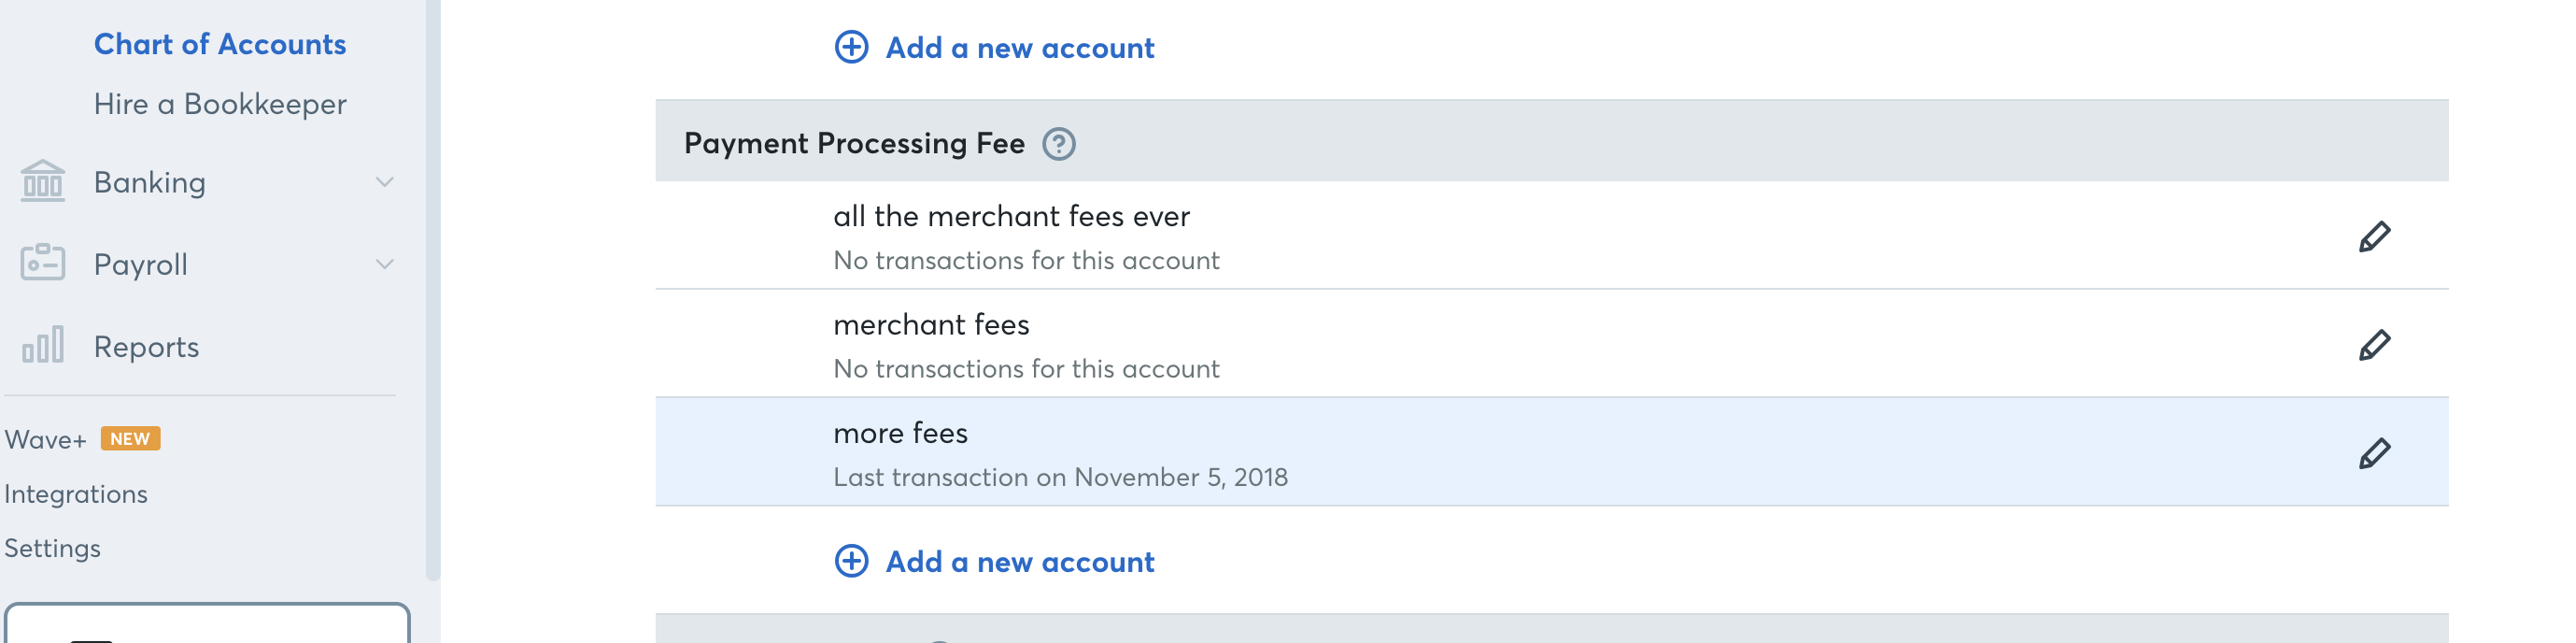 Fee You Will Be Able To Use These Particular Accounts Categorize The Transaction I Have Attached Two Screenshots Showing This As An Example